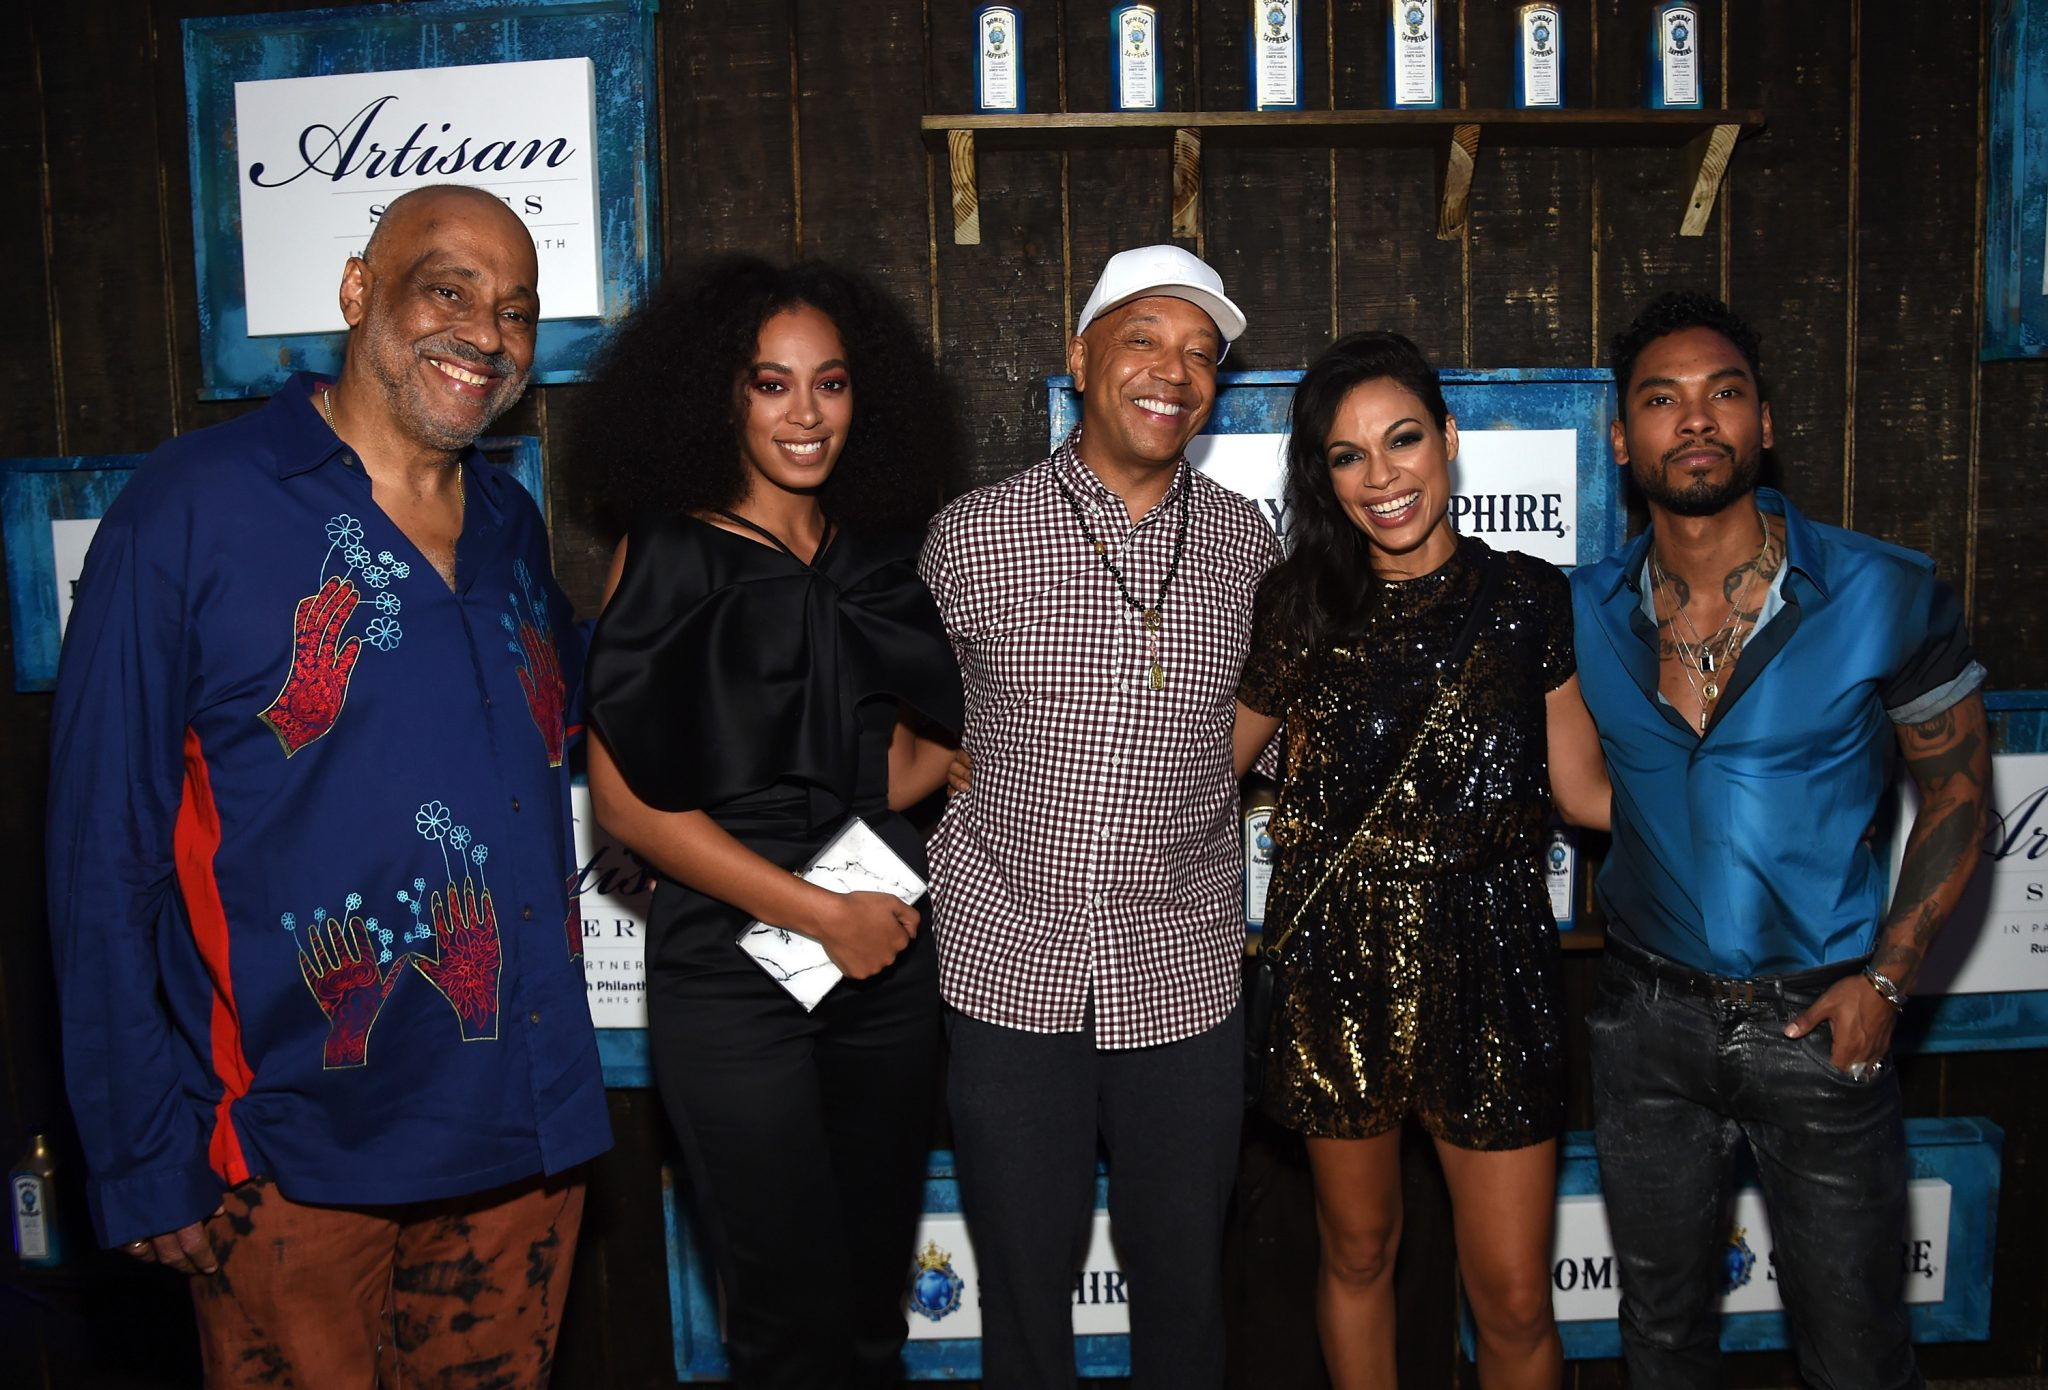 6th Annual Bombay Sapphire Artisan Series Hosted by Russell & Danny Simmons With Rosario Dawson